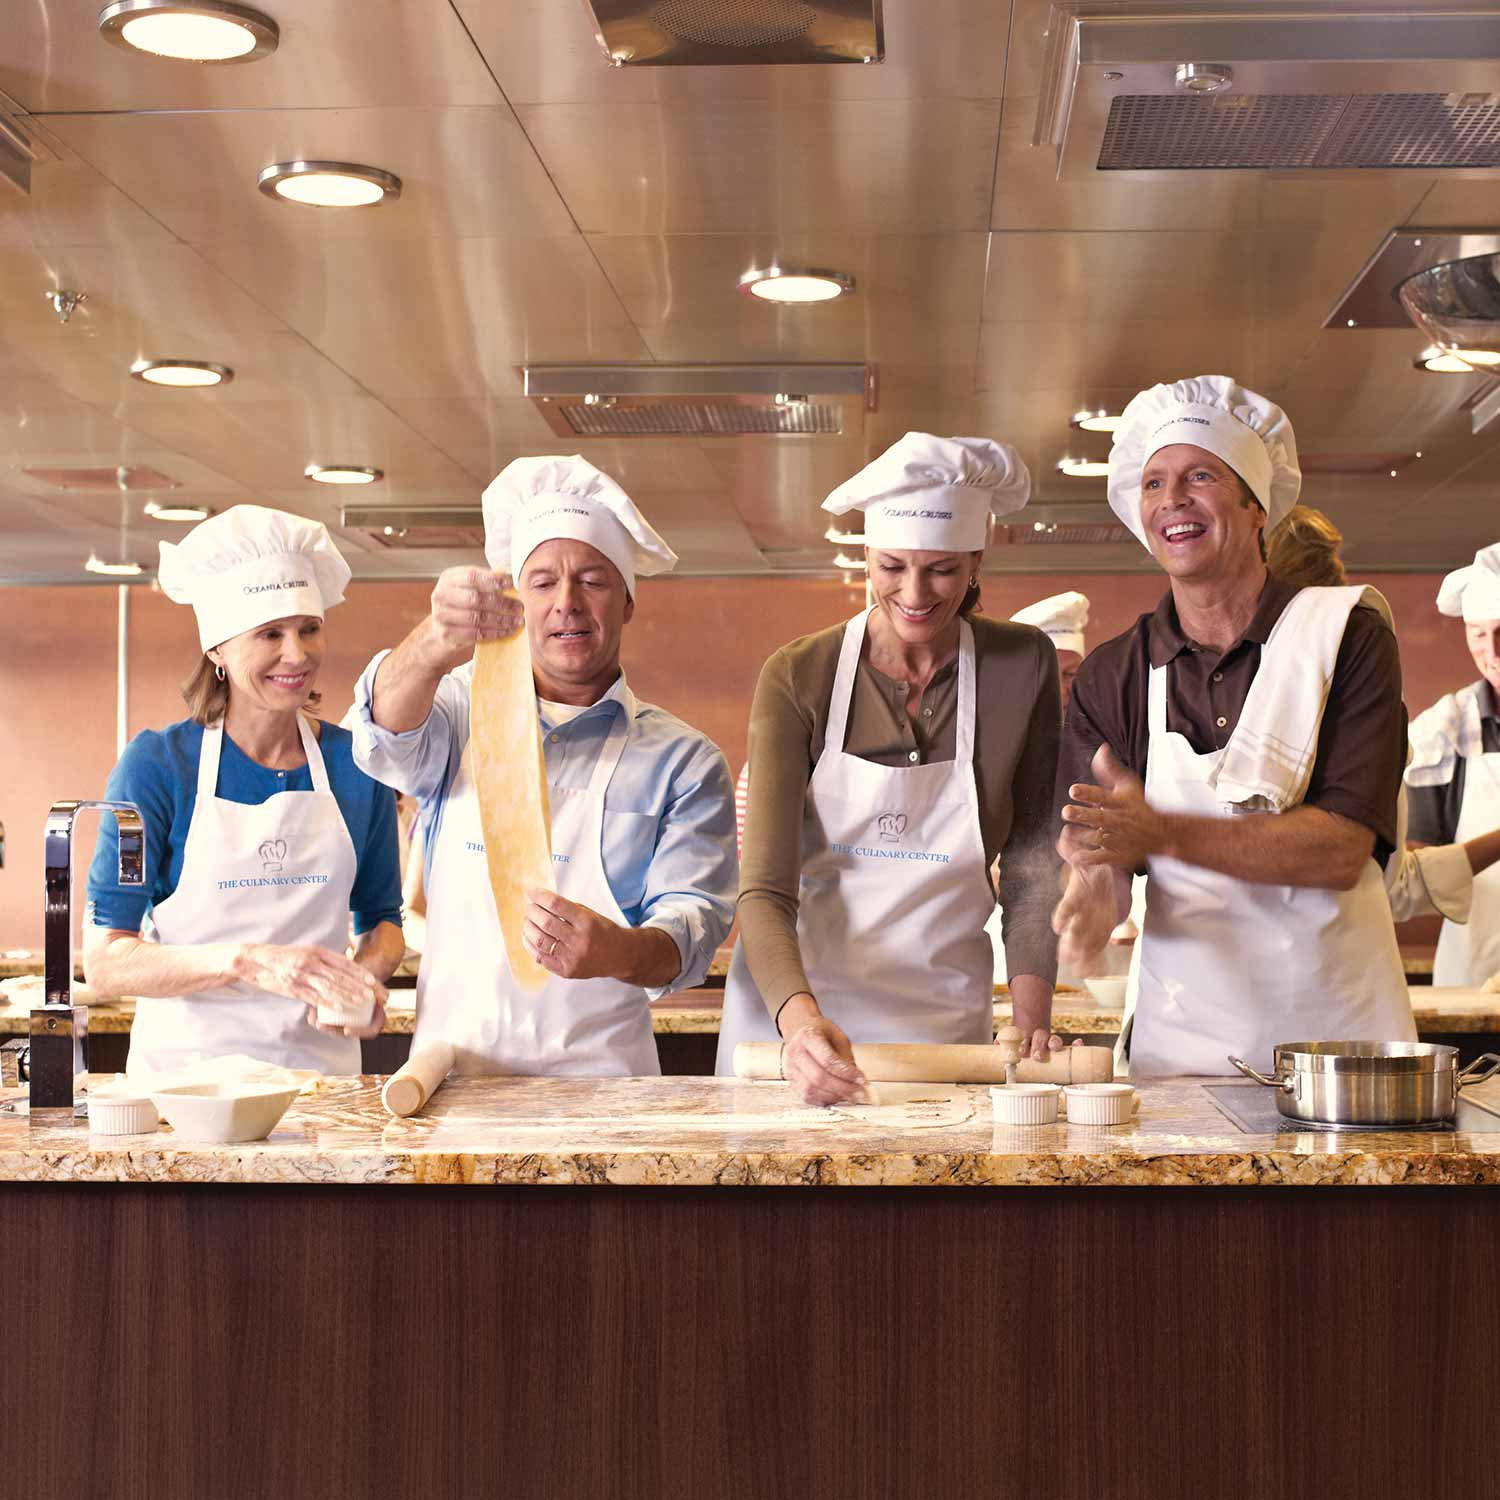 oceania-cruises-cooking-1500